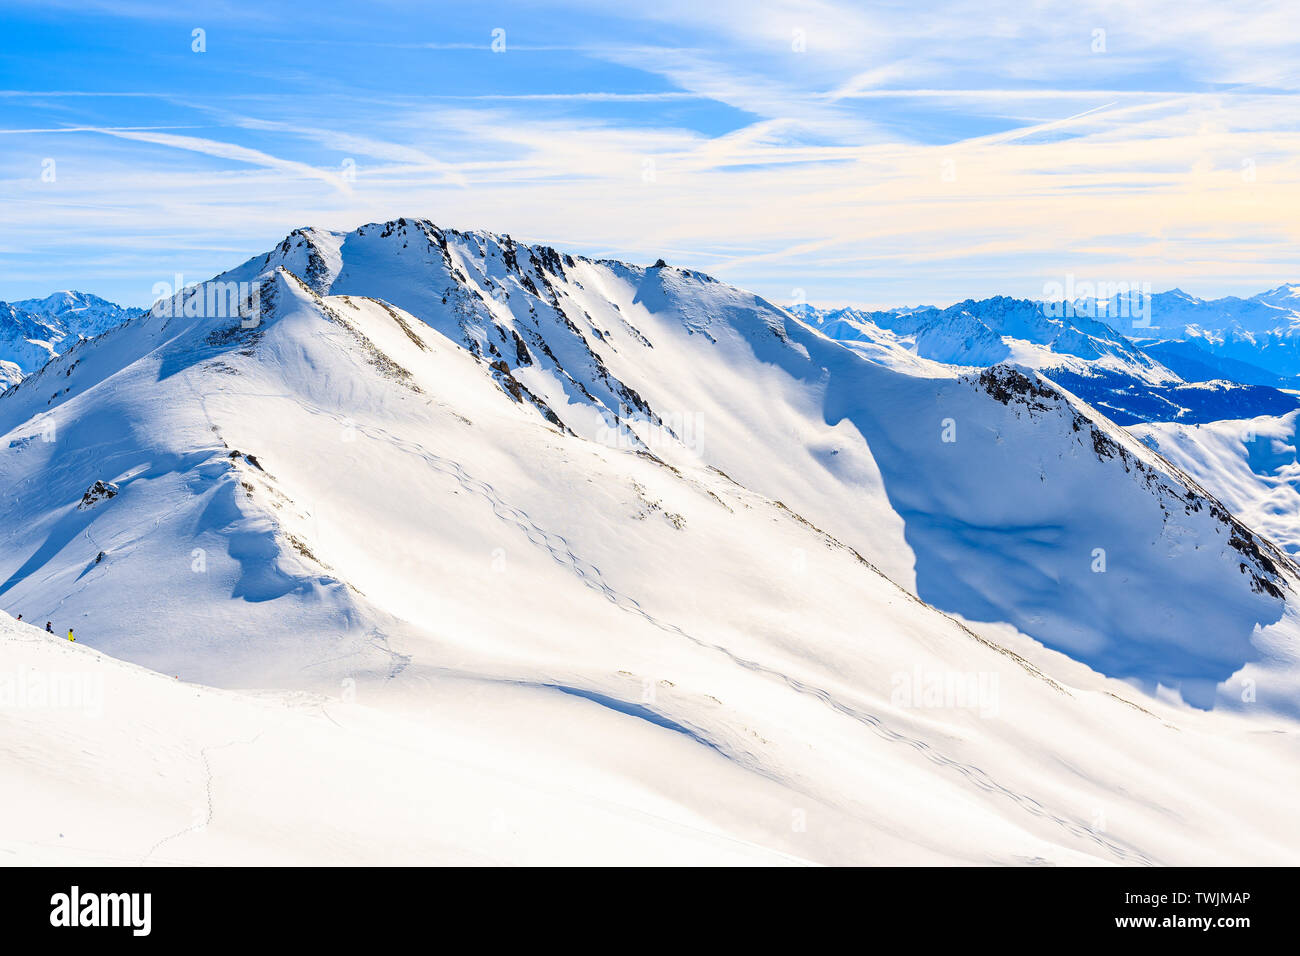 View of ski slope and amazing Austrian Alps mountains in ...